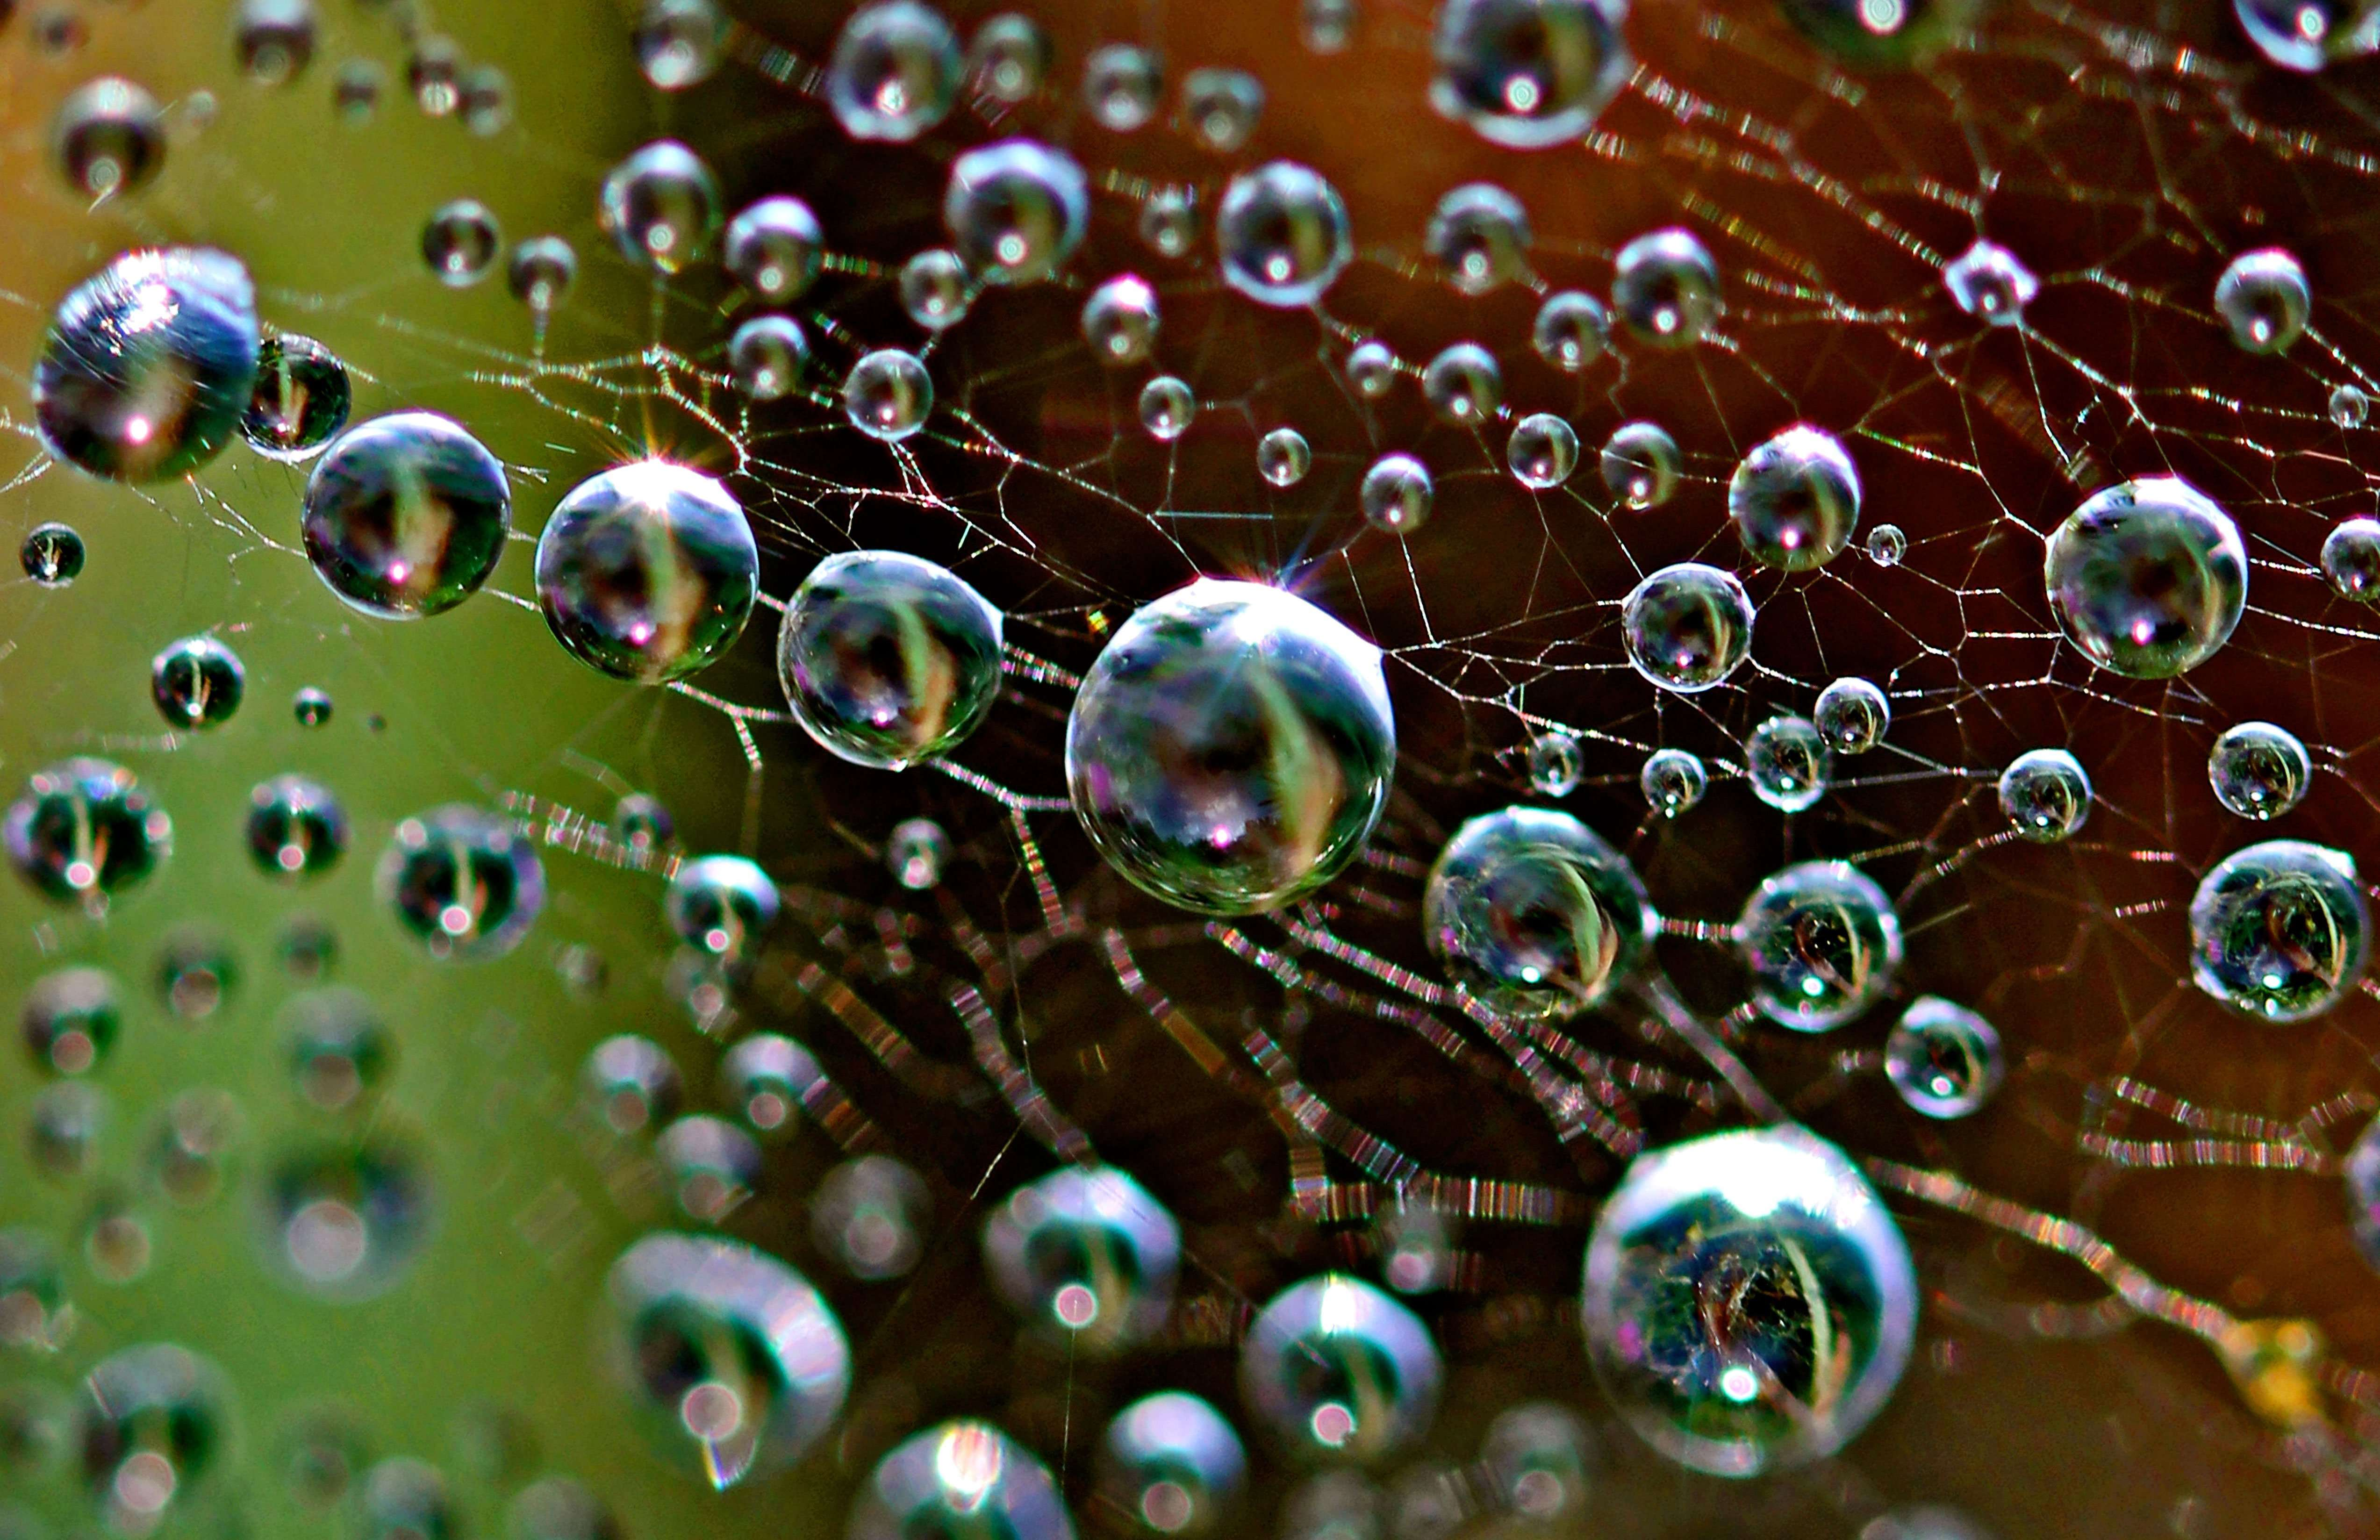 Another Galaxy - Dew on Bowl & Doily Spider web